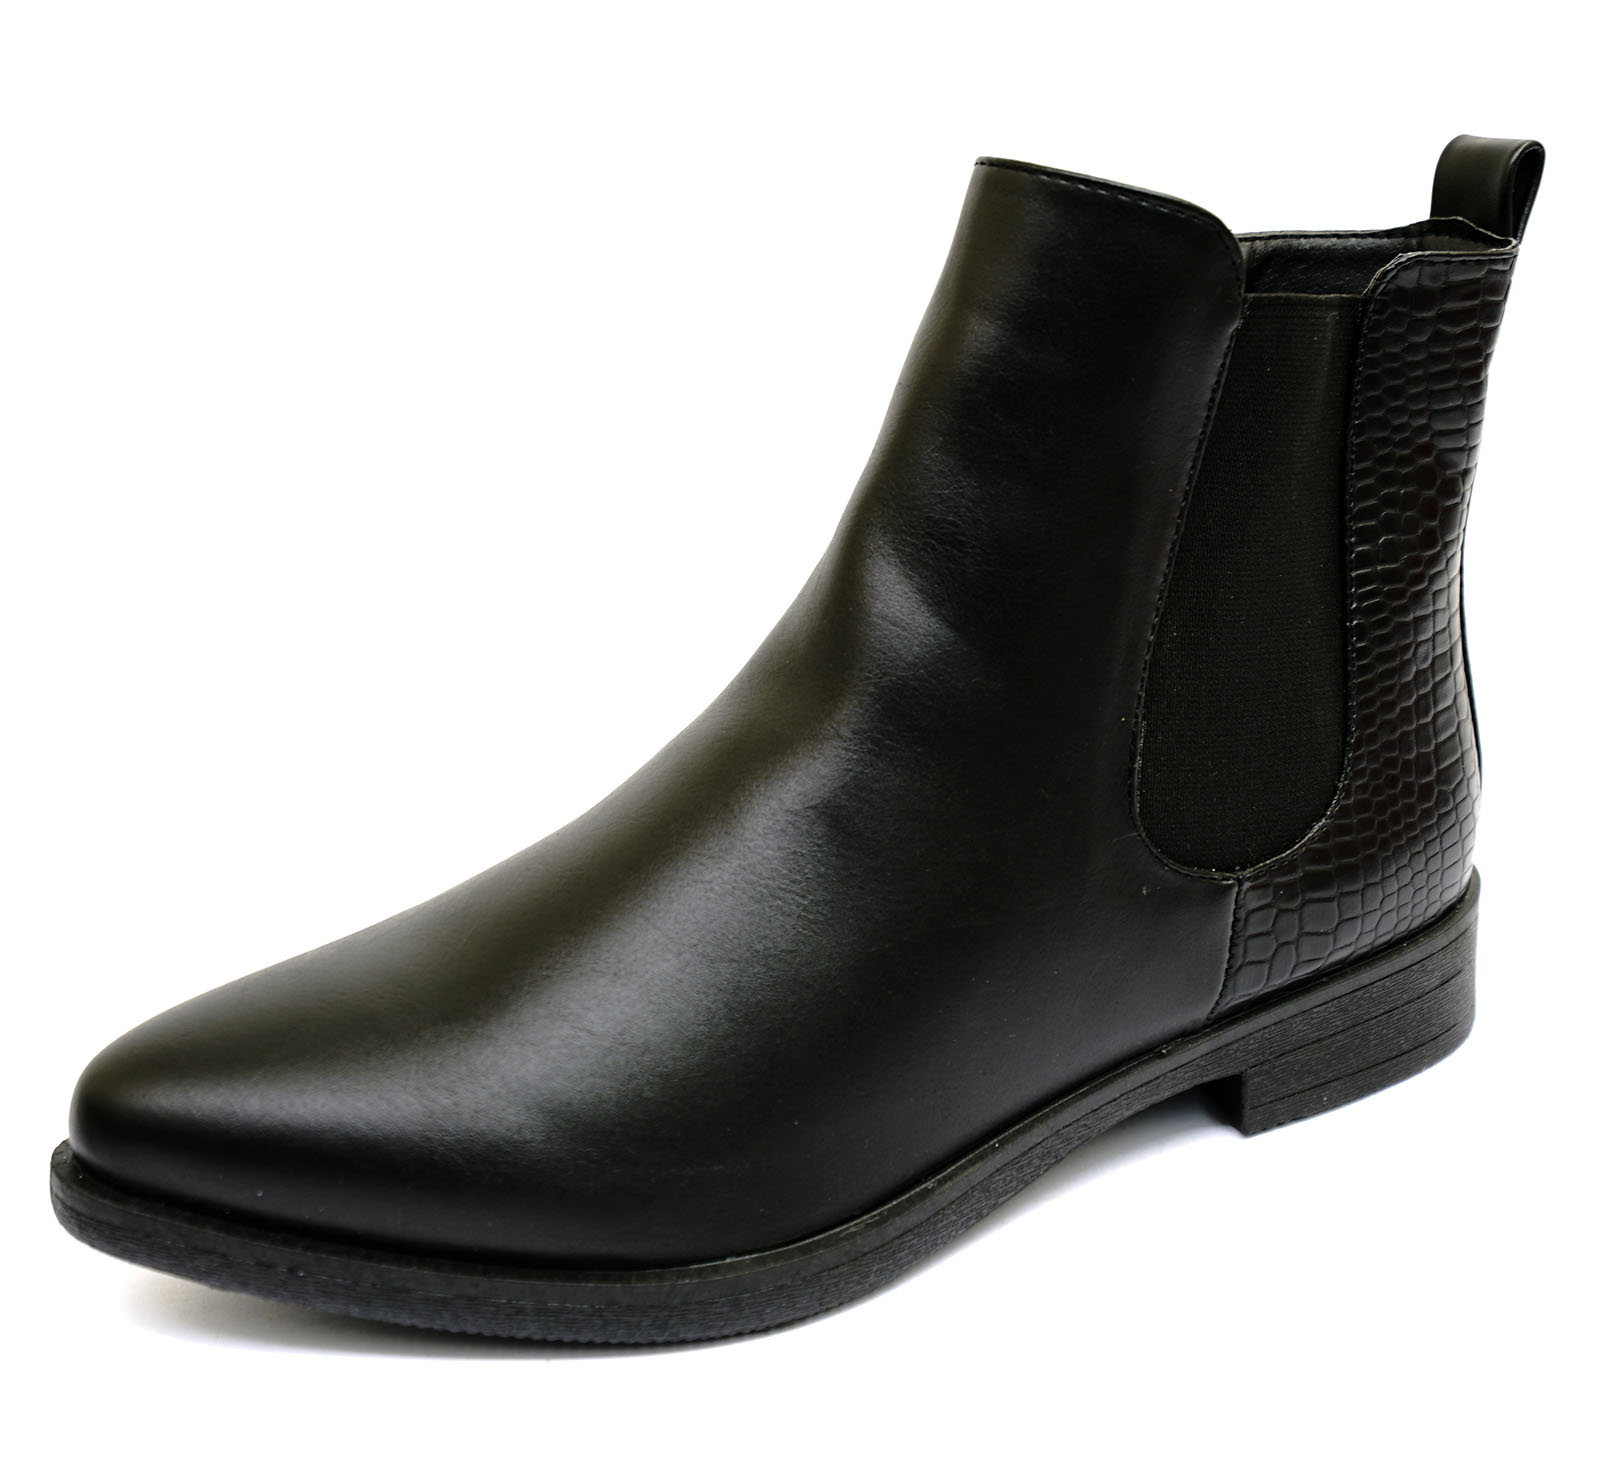 Popular Womens Vagabond Kenova Black Leather Casual Winter Ankle Chelsea Boots UK 3.5-8 | EBay